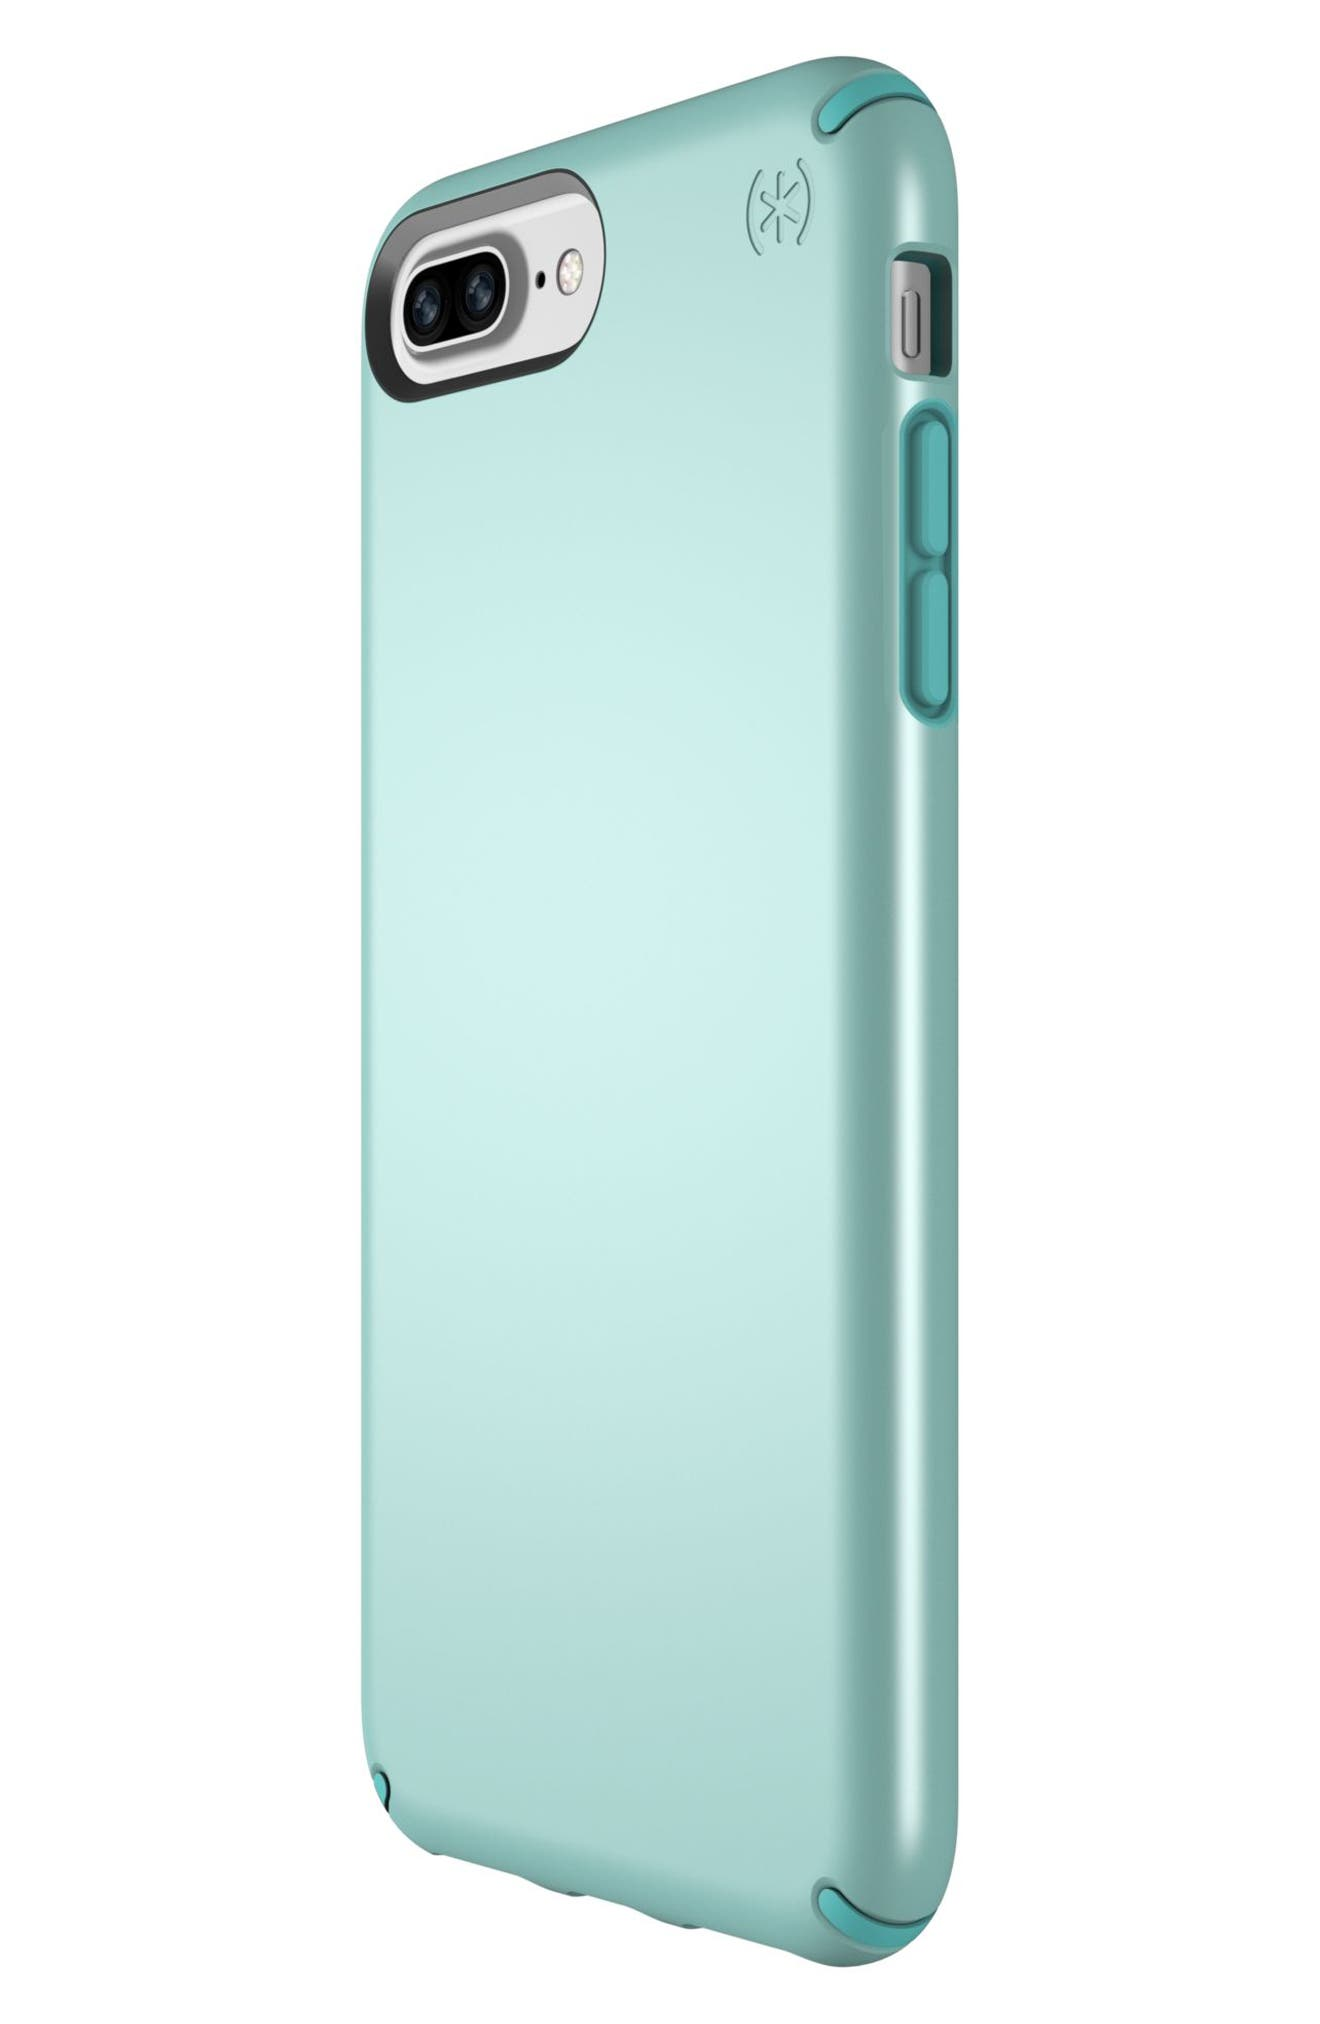 iPhone 6/6s/7/8 Plus Case,                             Alternate thumbnail 3, color,                             Peppermint Green/ Teal